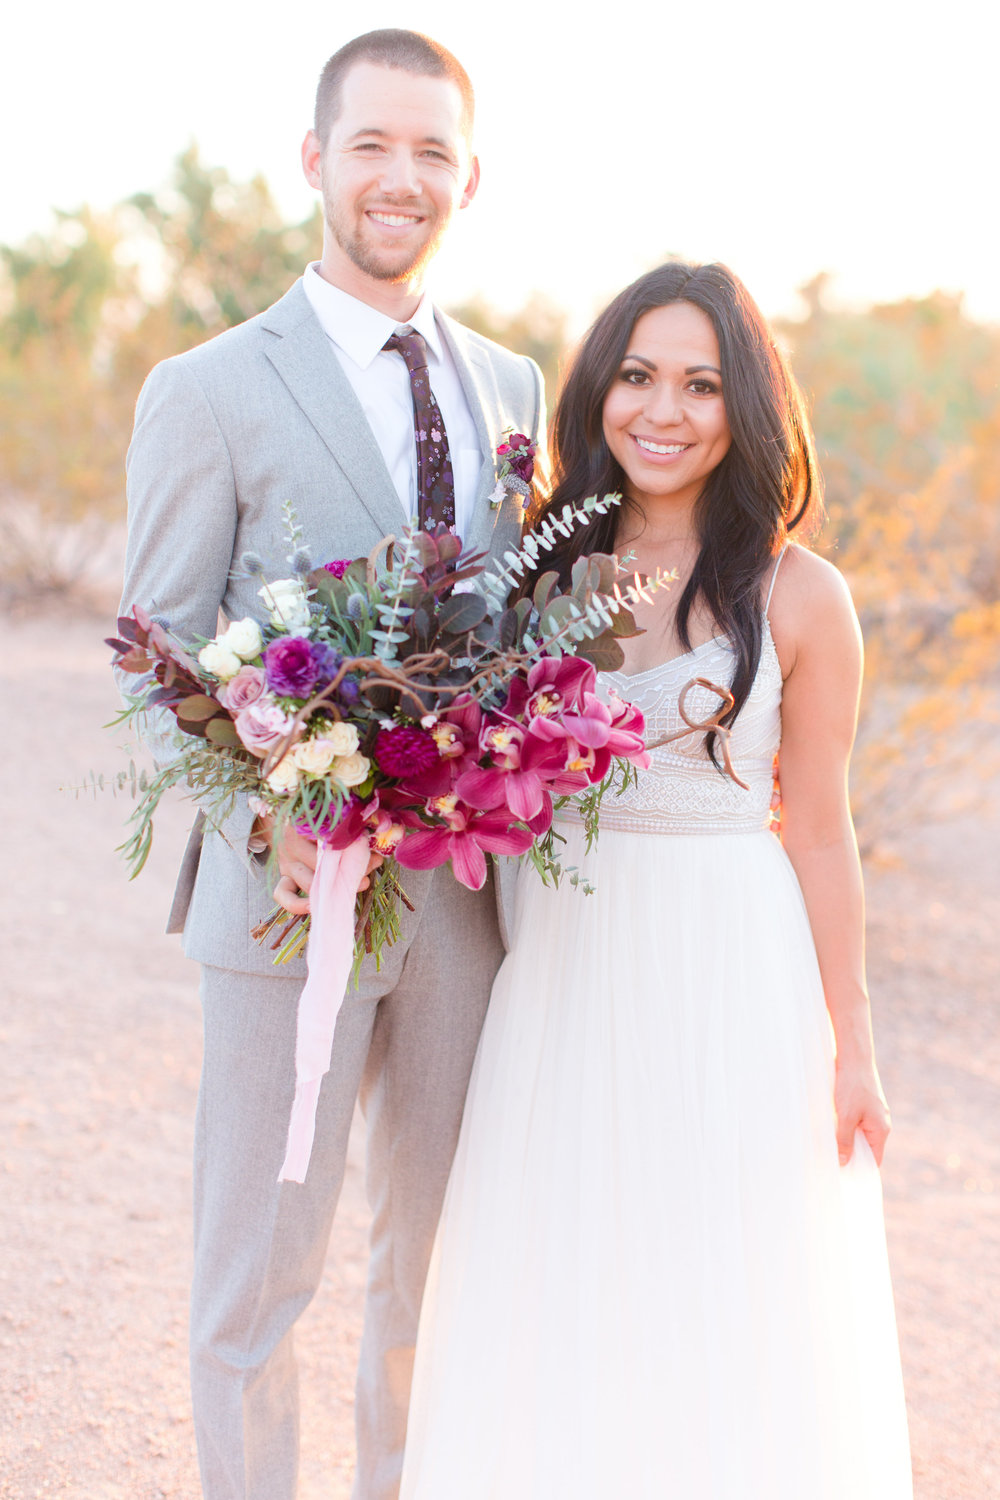 bride-groom-desert-wedding.jpg